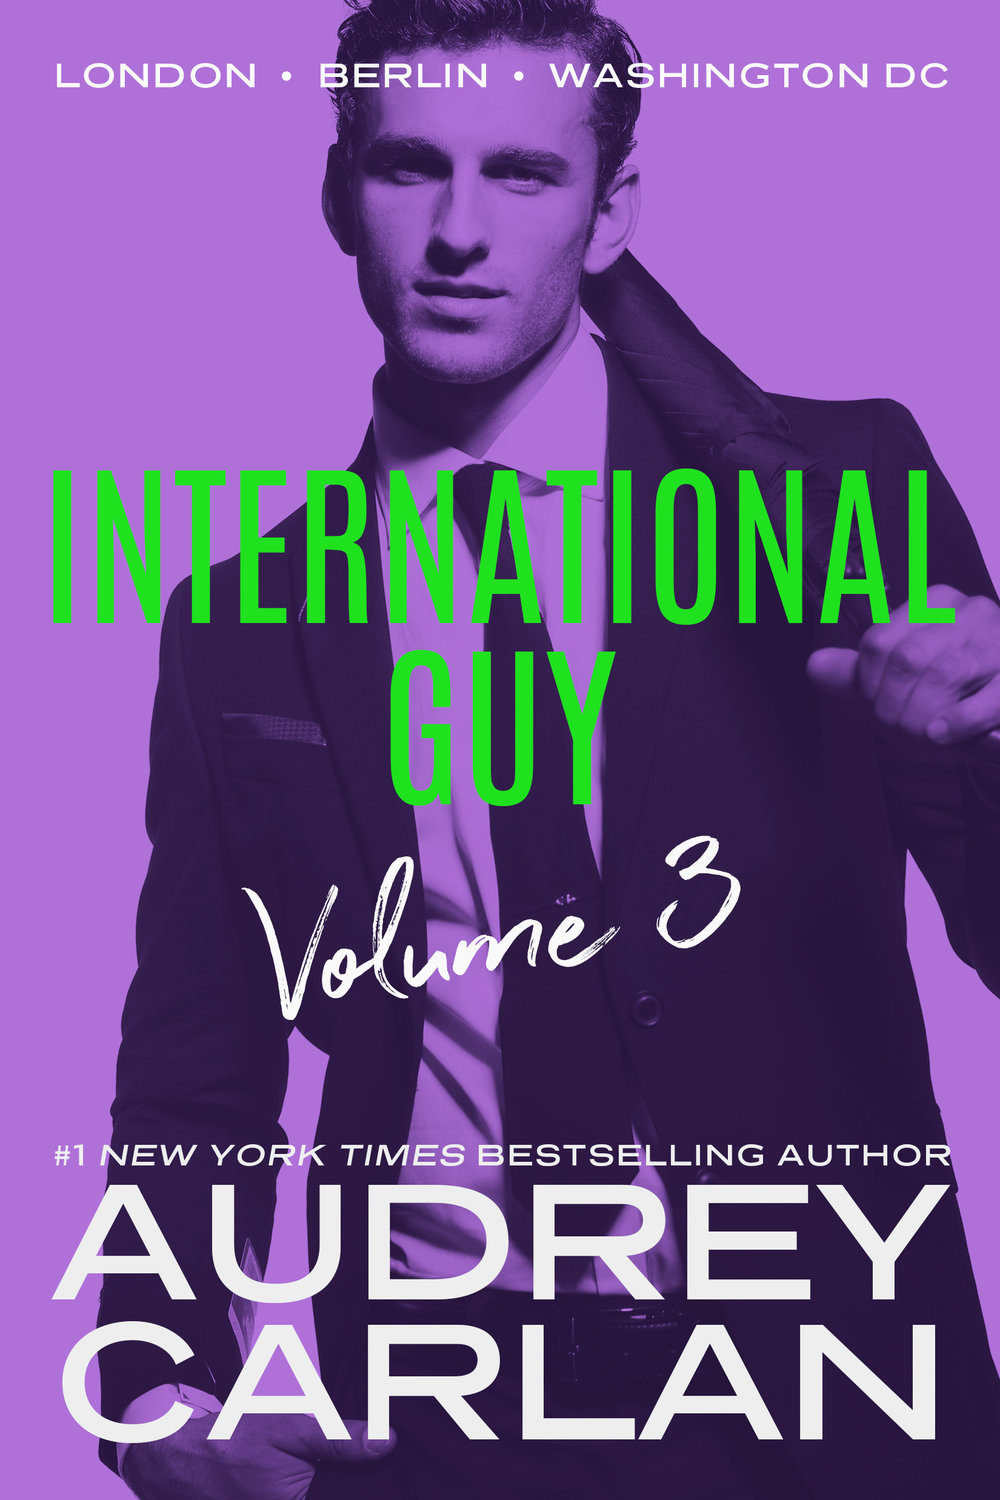 Audrey Carlan International Guy Volume 3.jpg